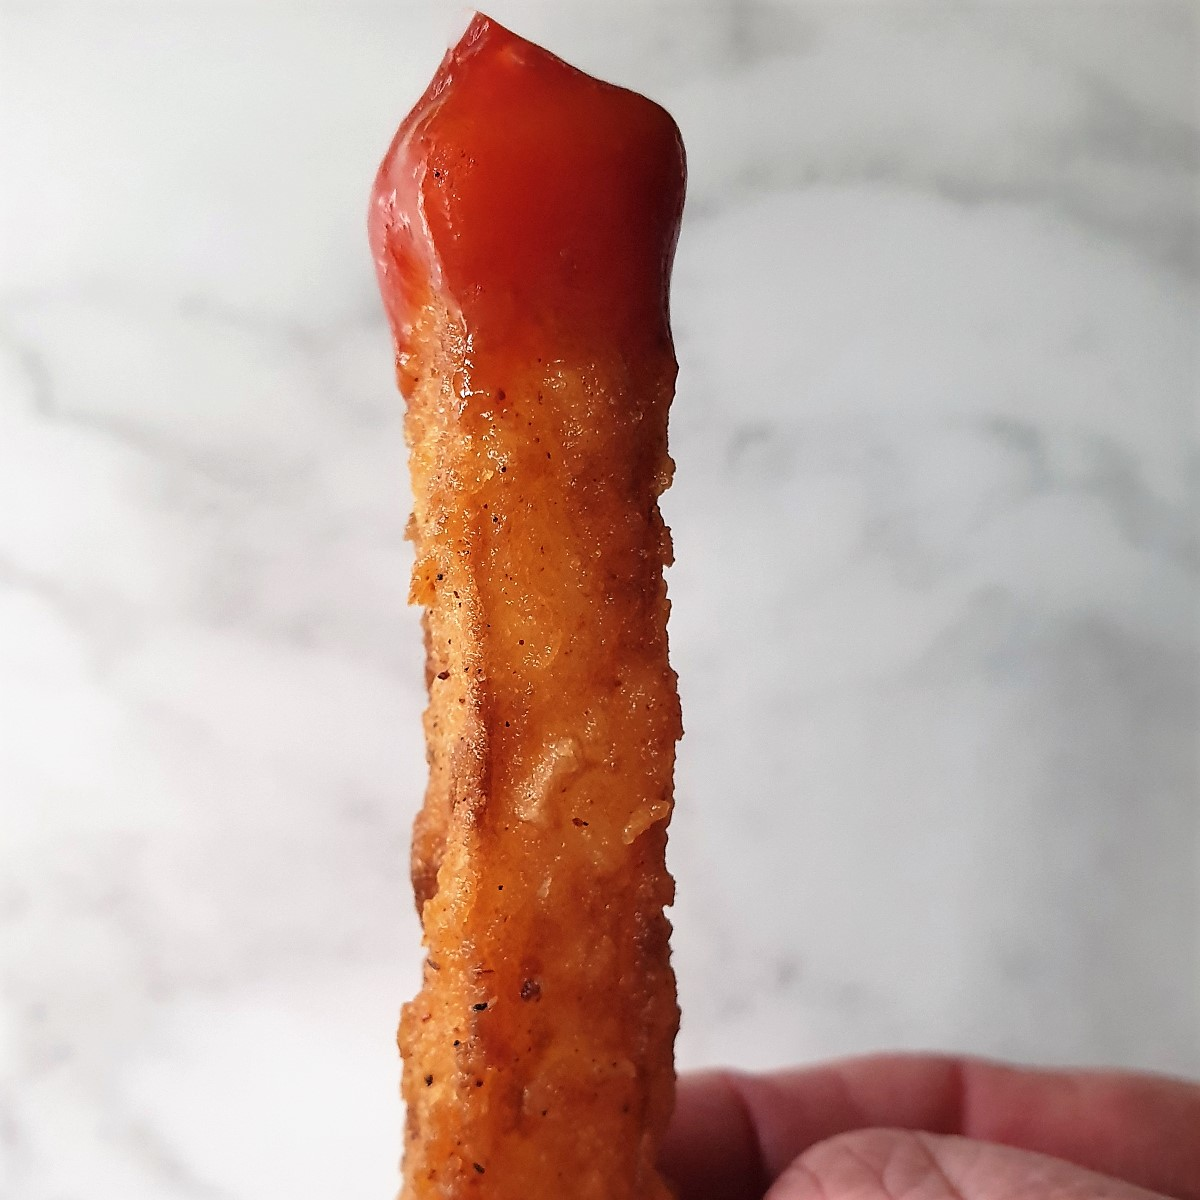 A crispy potato fry dipped in tomato sauce.